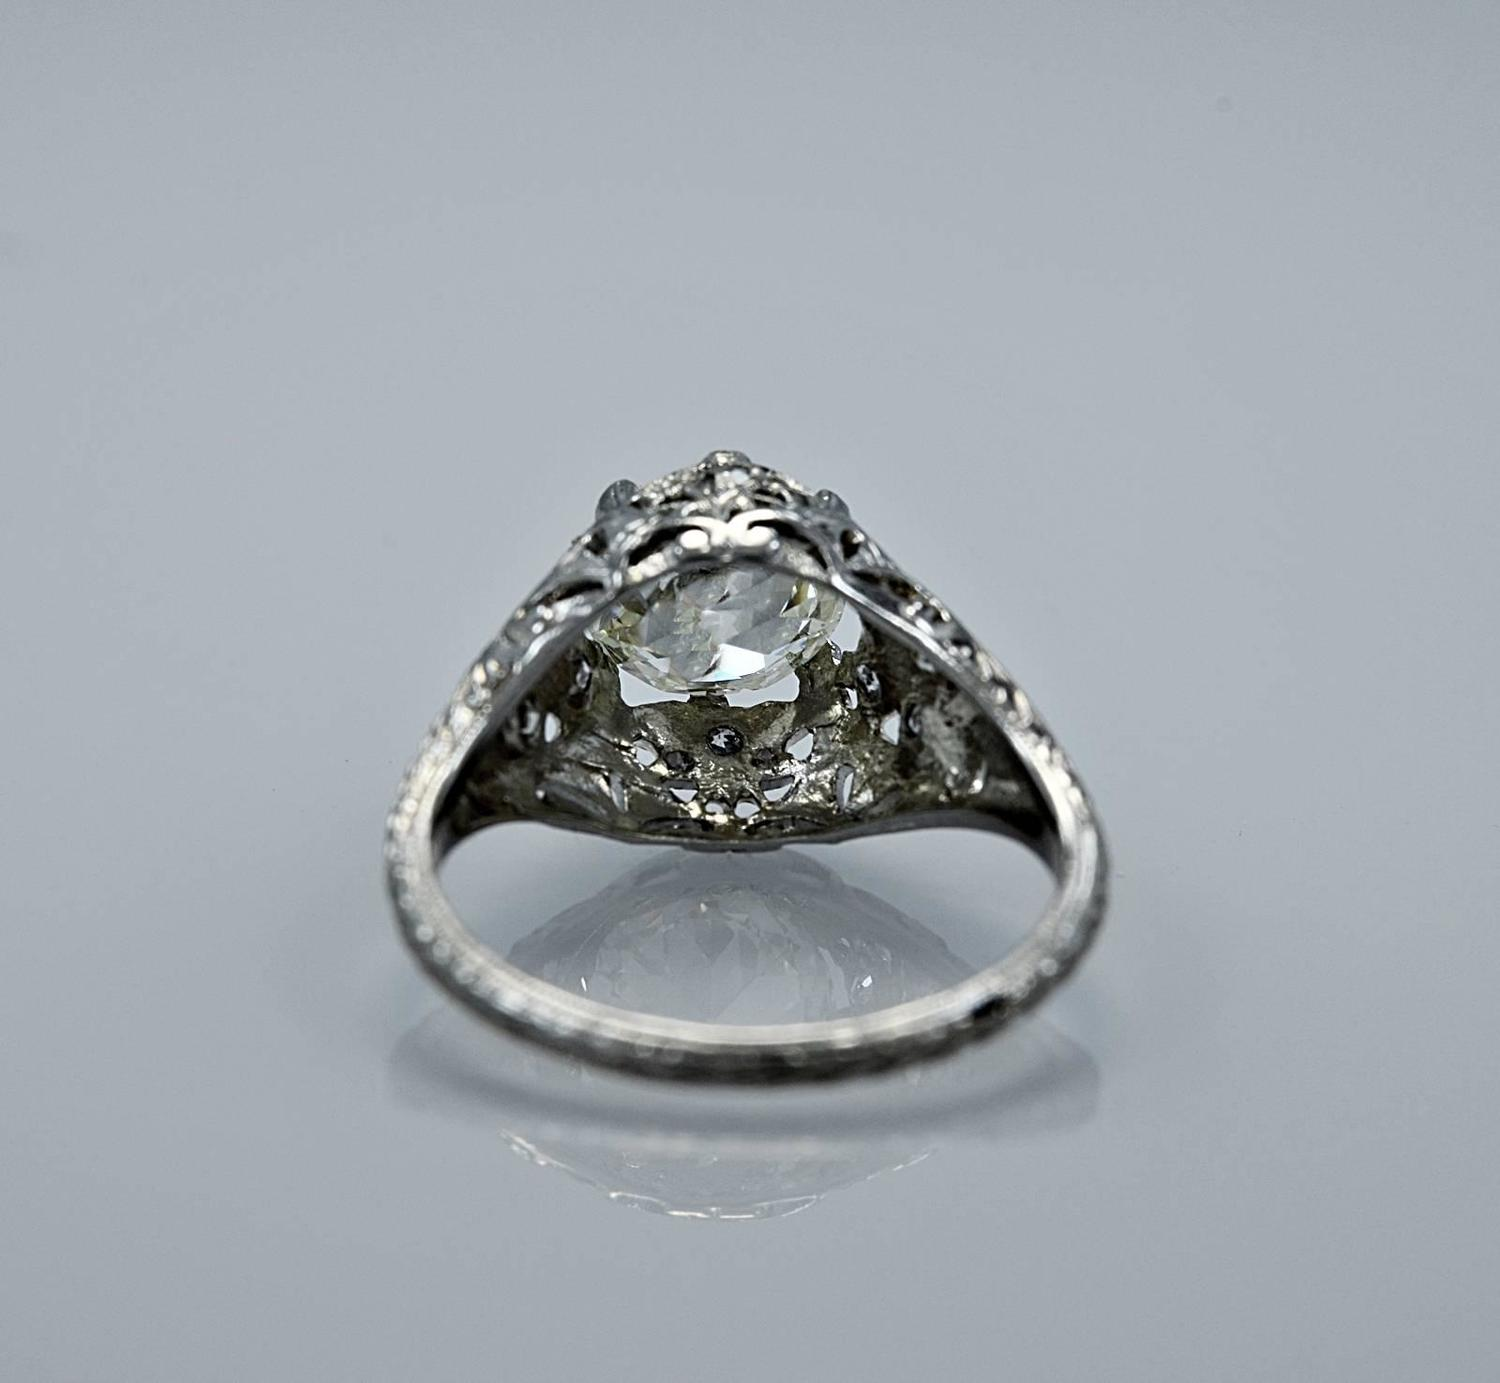 Art Deco 2 00 Carat Diamond Platinum Engagement Ring For Sale at 1stdibs